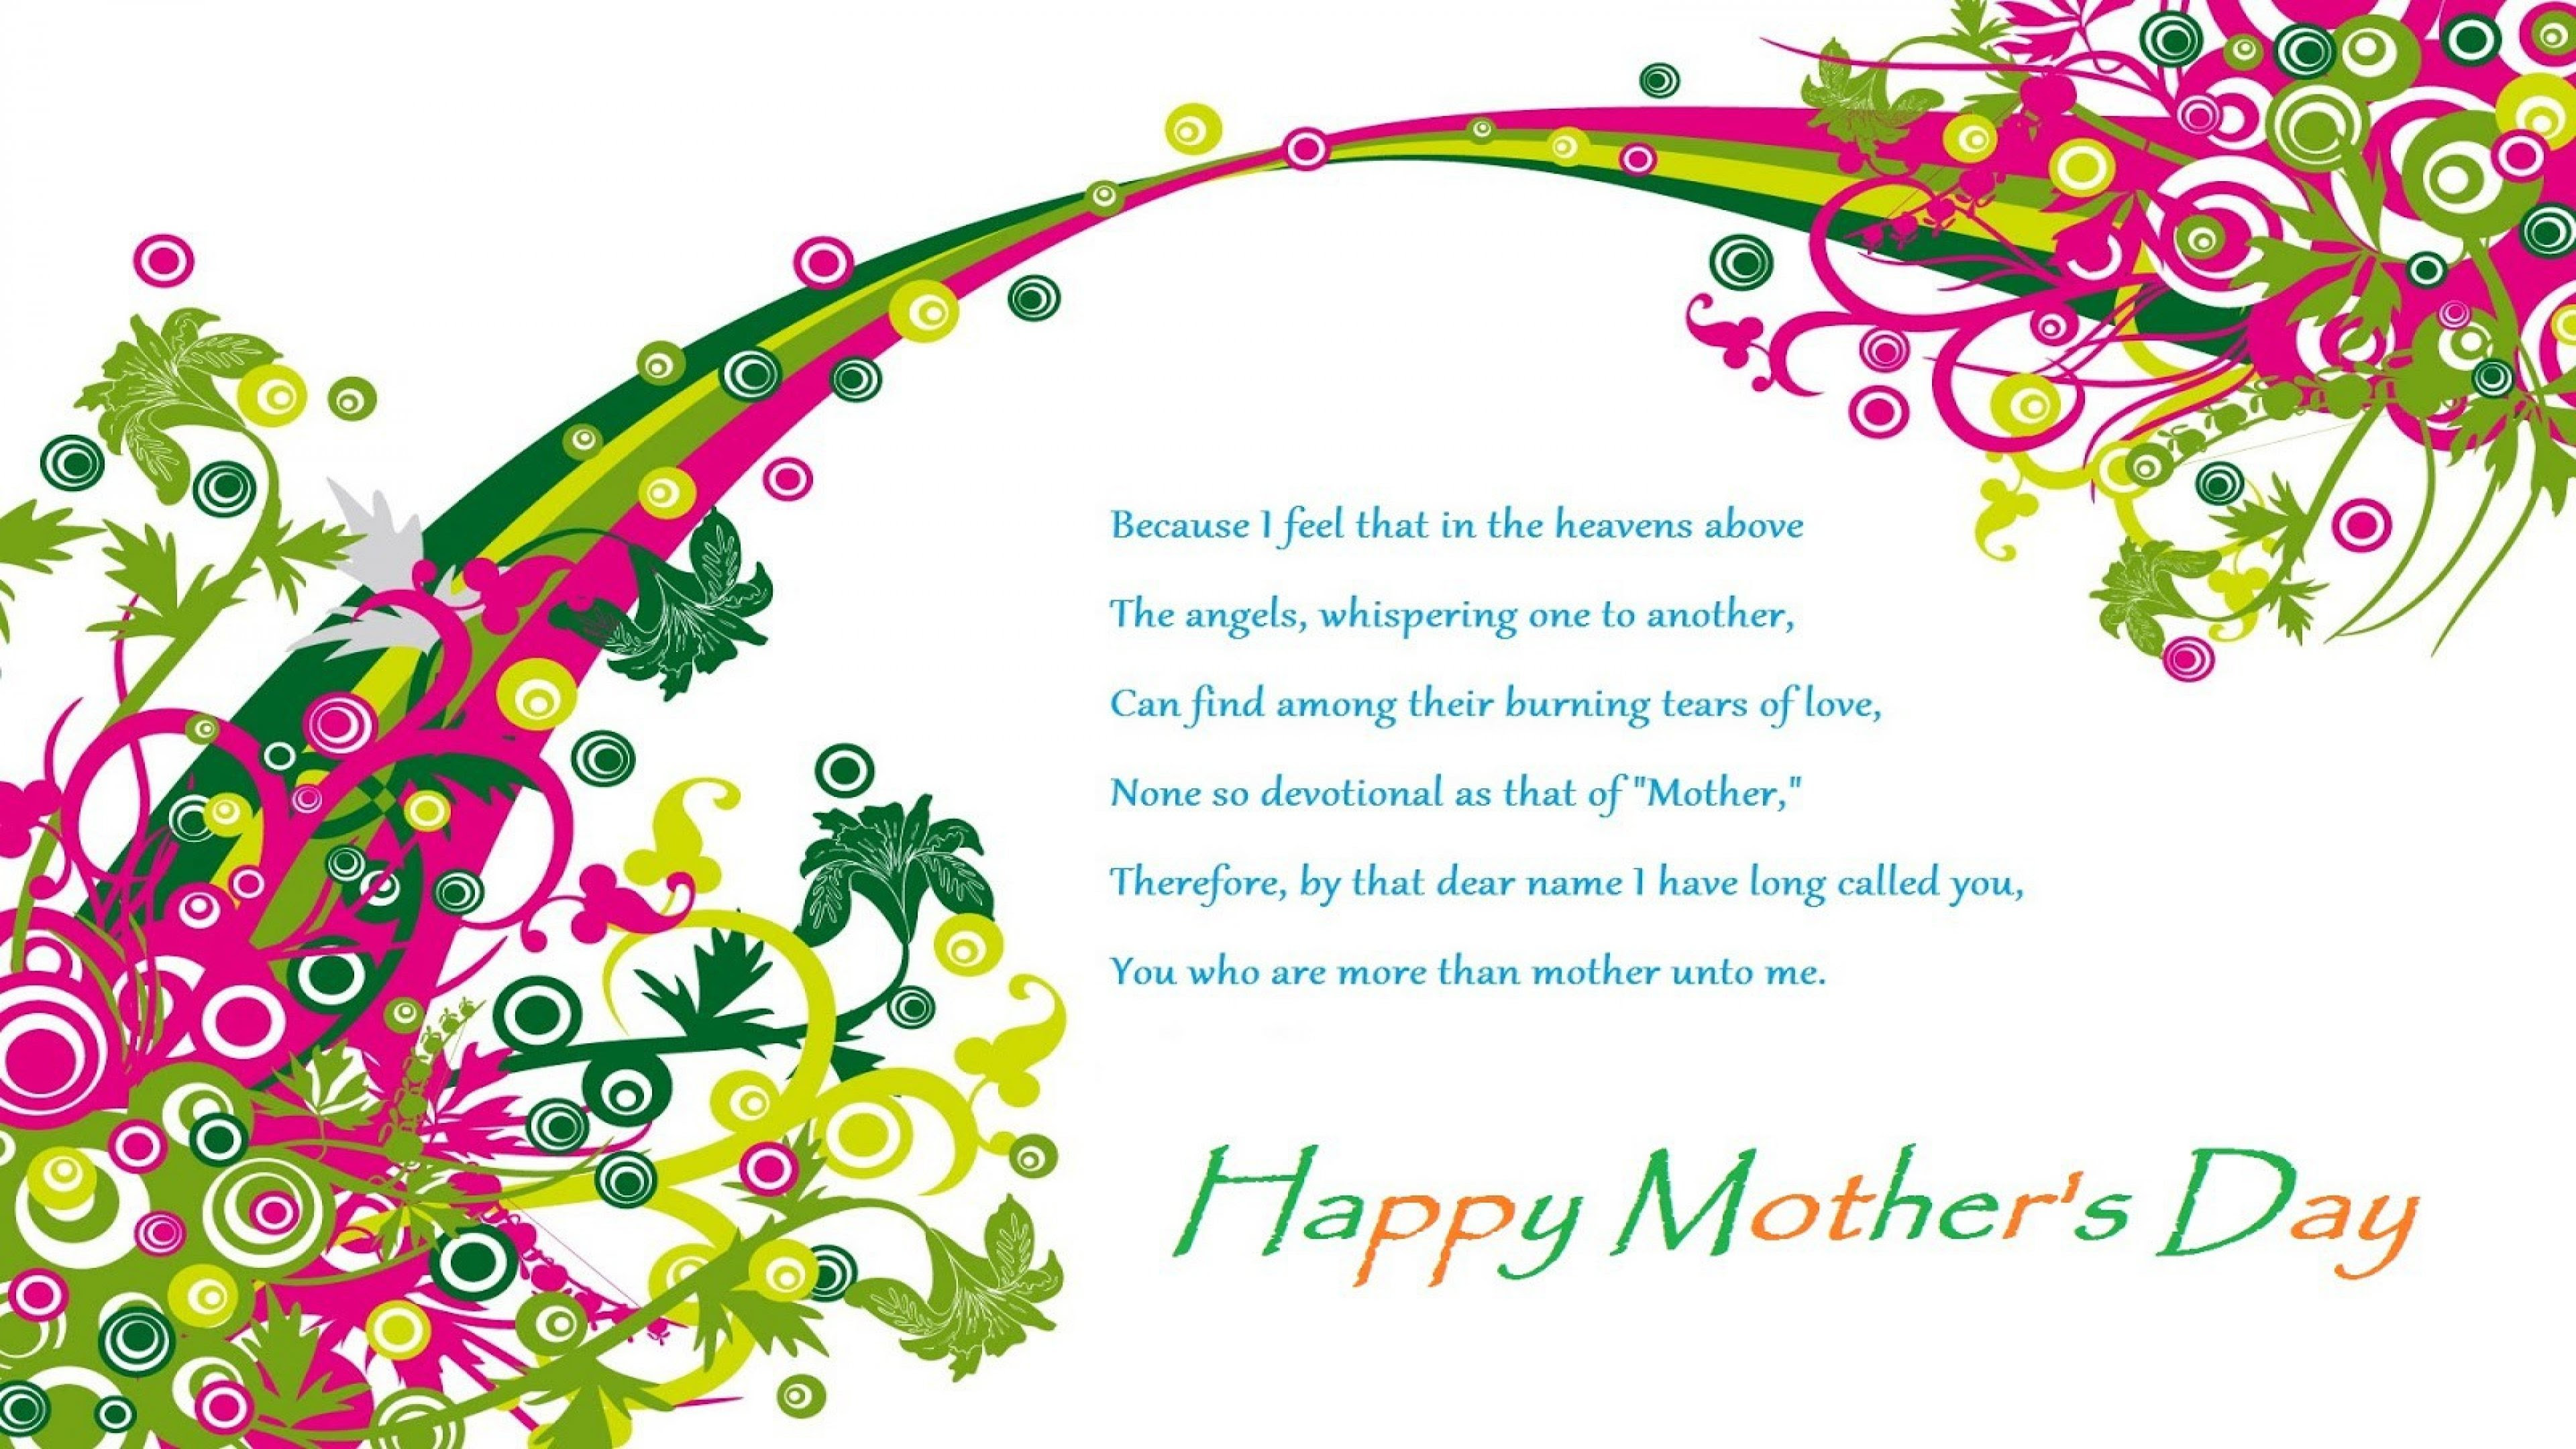 Happy Mother S Day Poem Greetings Image Wallpaper